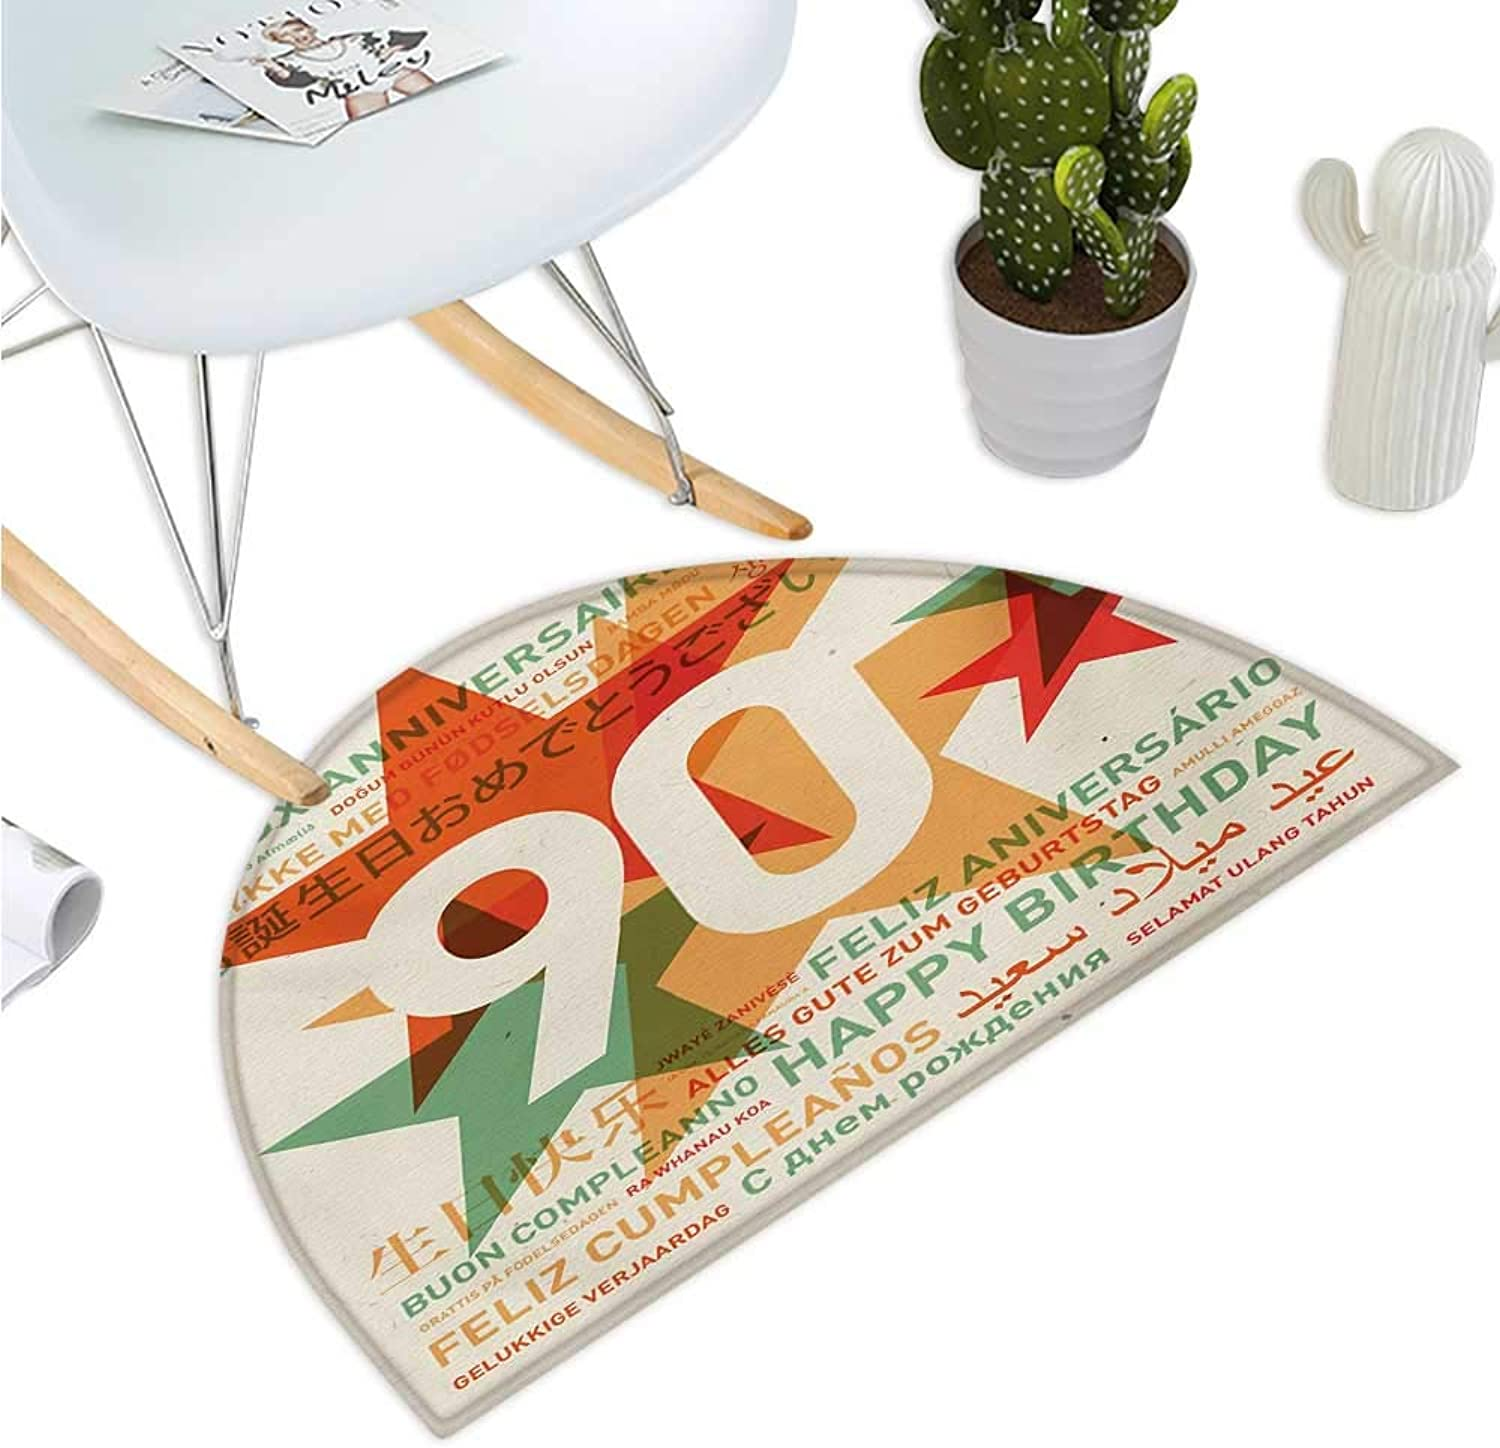 90th Birthday Semicircular Cushion Old Age Celebrations from The World Languages and Stars in Vintage Style Bathroom Mat H 47.2  xD 70.8  Multicolor